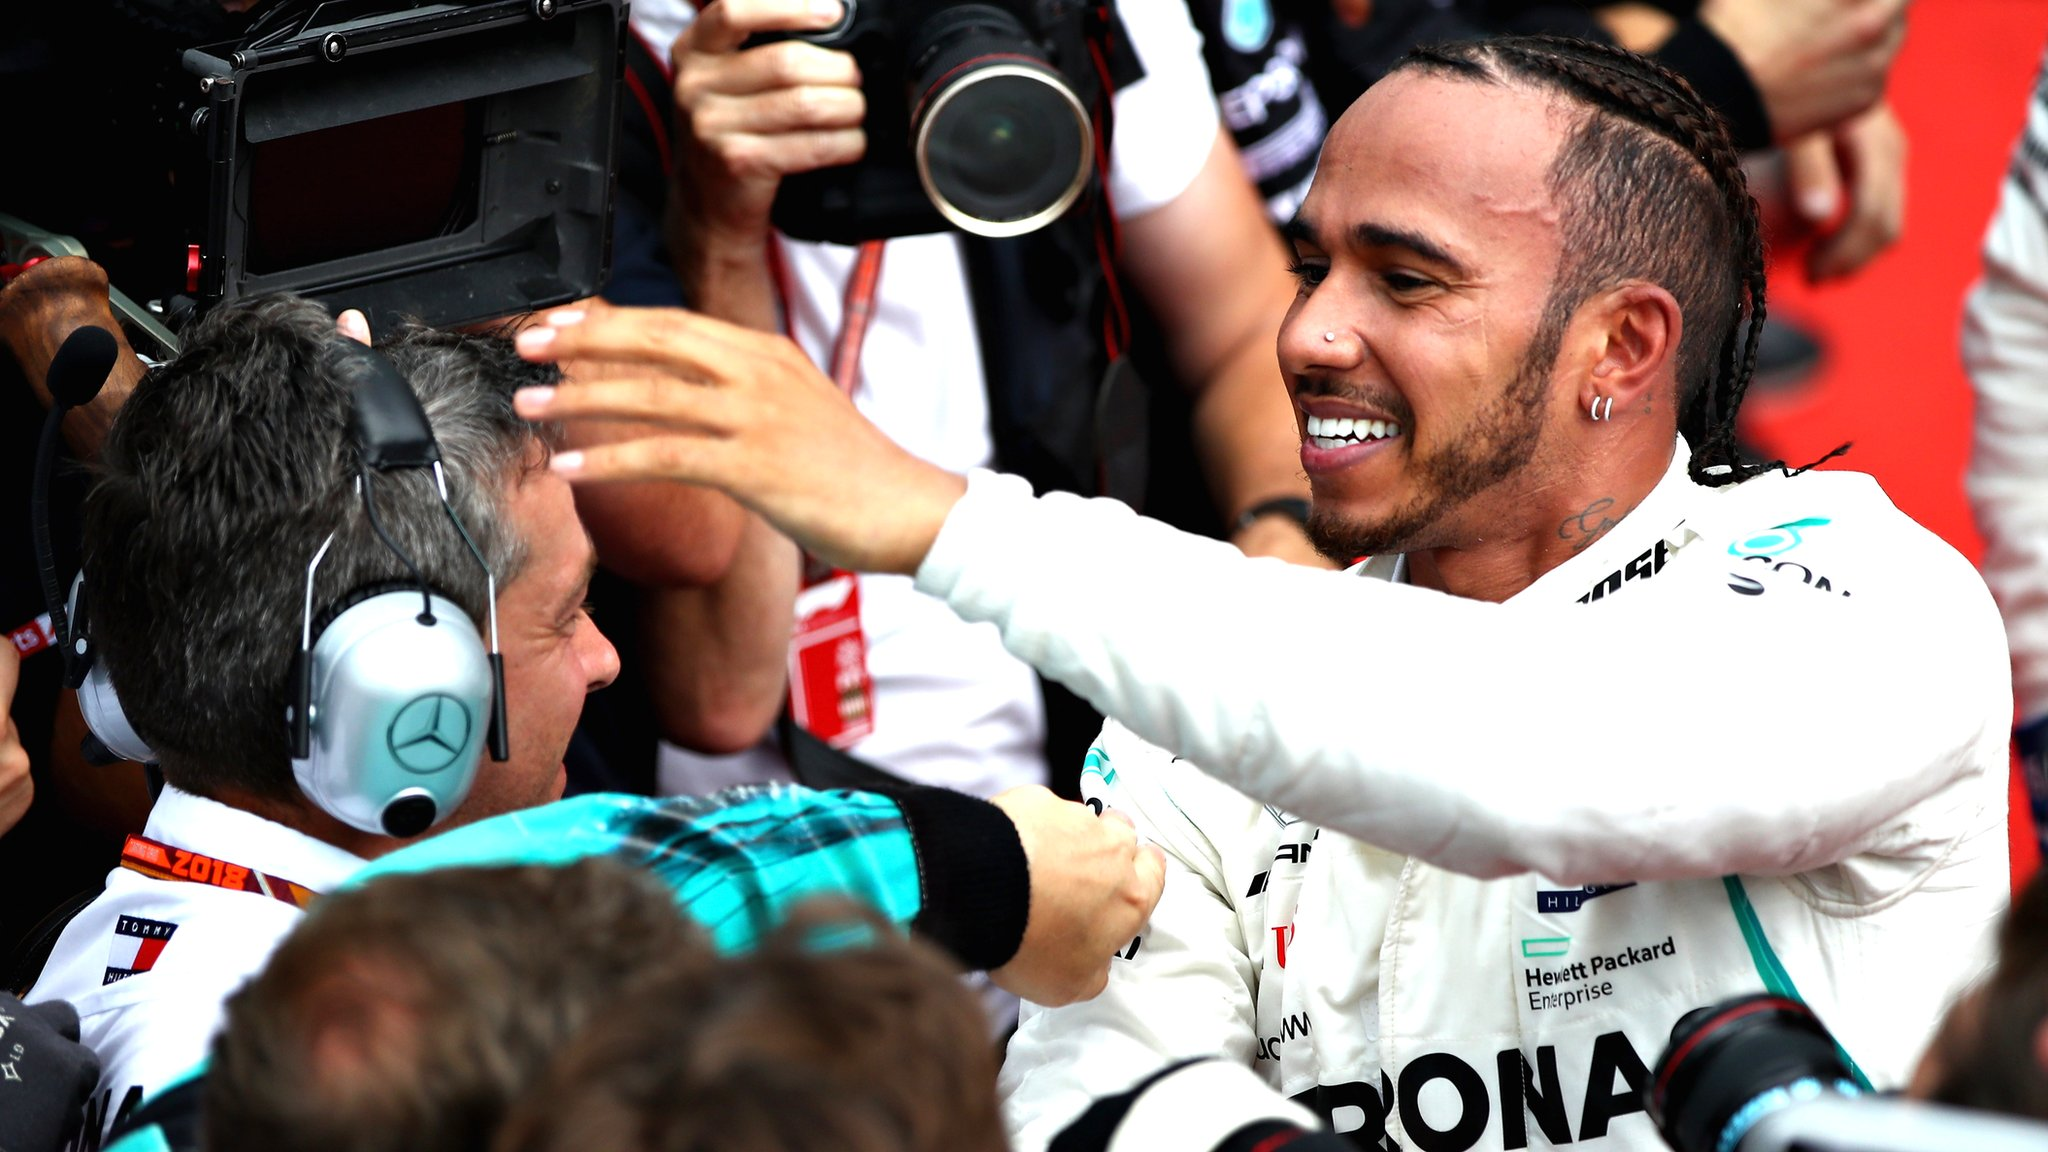 German Grand Prix: Lewis Hamilton wins after Sebastian Vettel crashes out